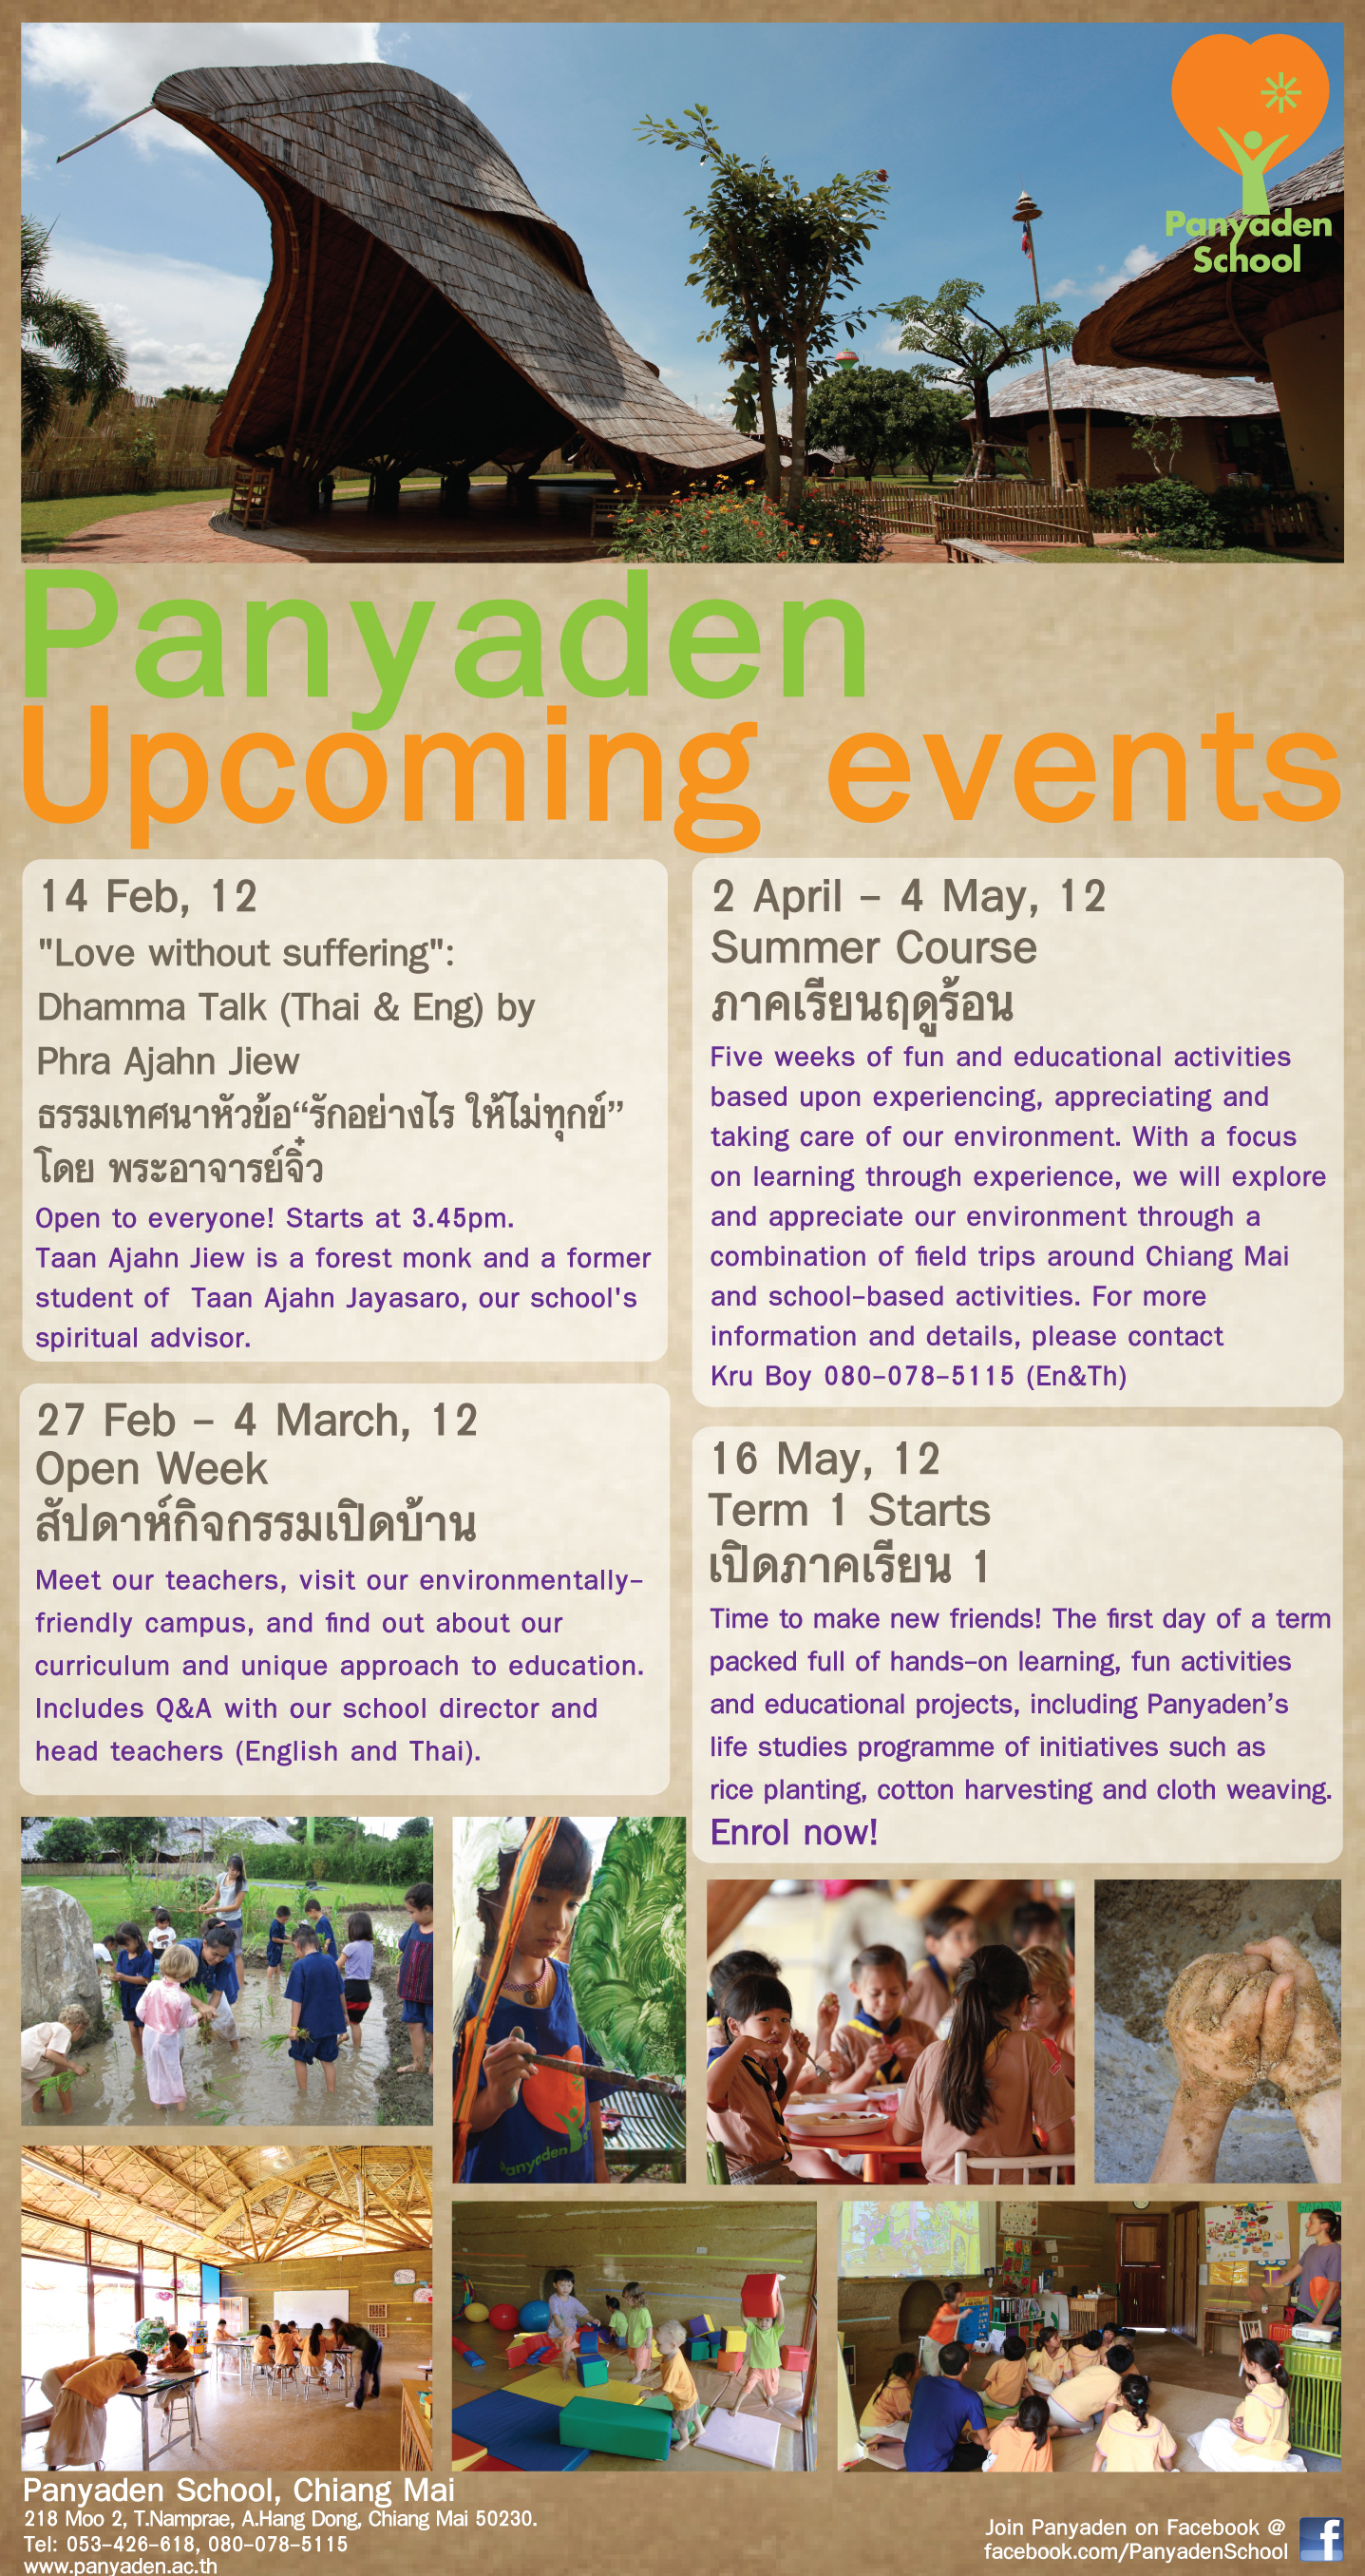 Upcoming events at Panyaden School, bilingual school in Chiang Mai